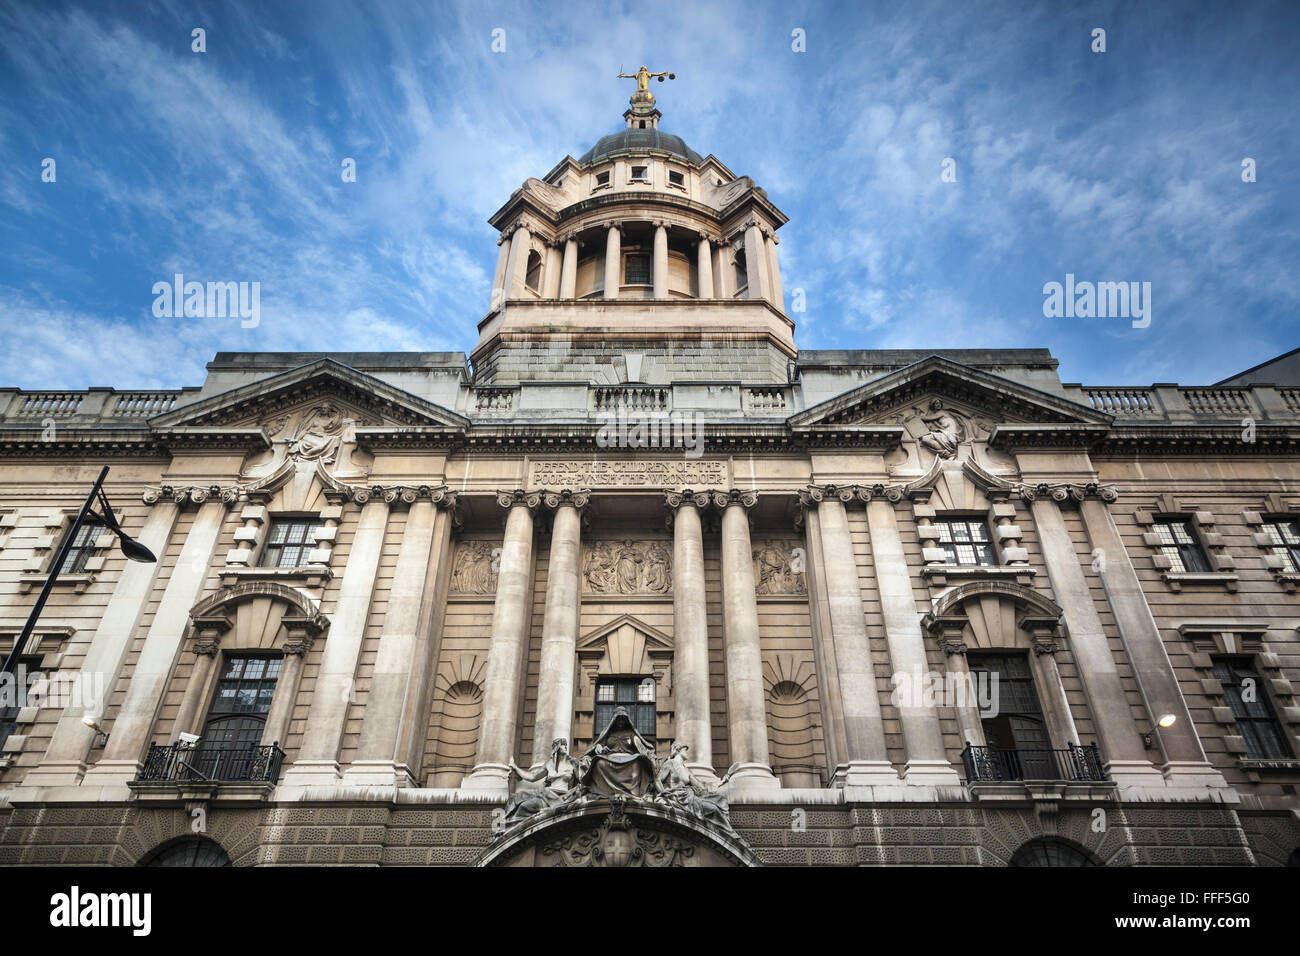 Facade of the 1900 building for the Central Criminal Court, known as the Old Bailey, in central London. Justice - Stock Image